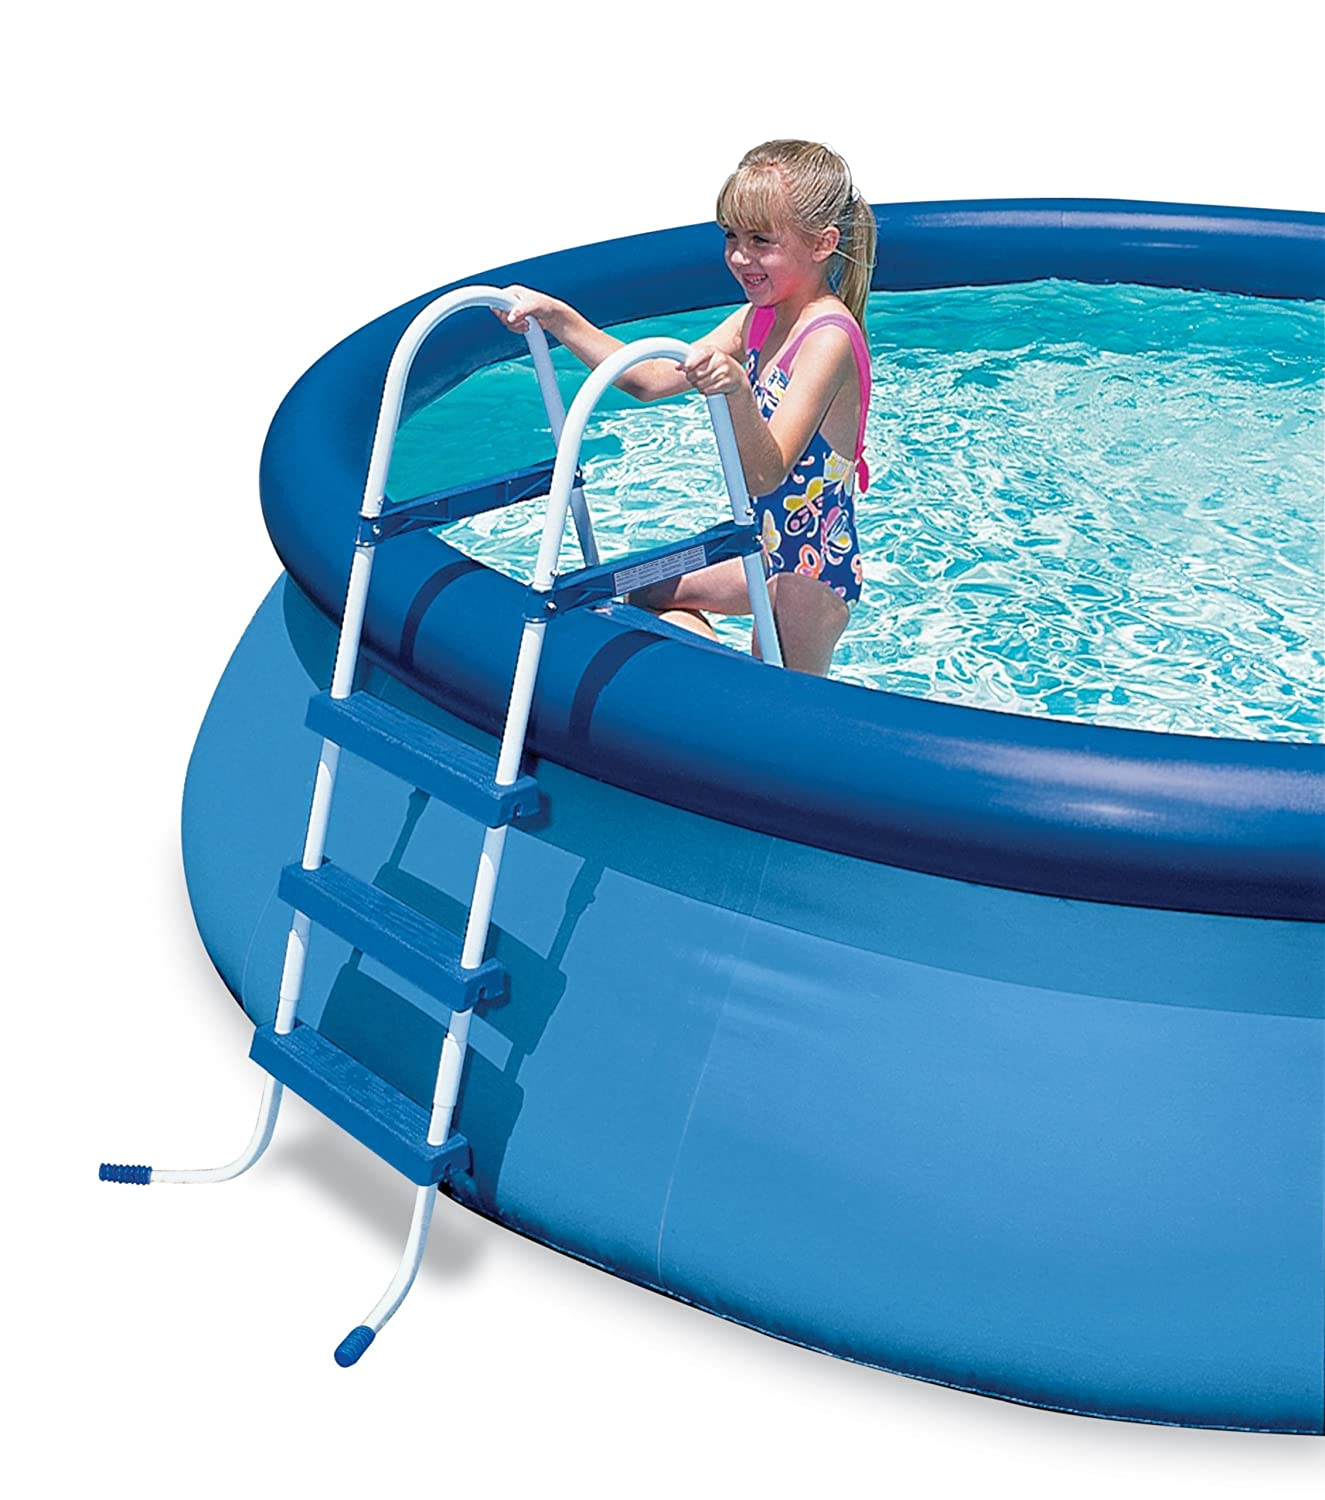 Intex Ladder without Deck Pools 36